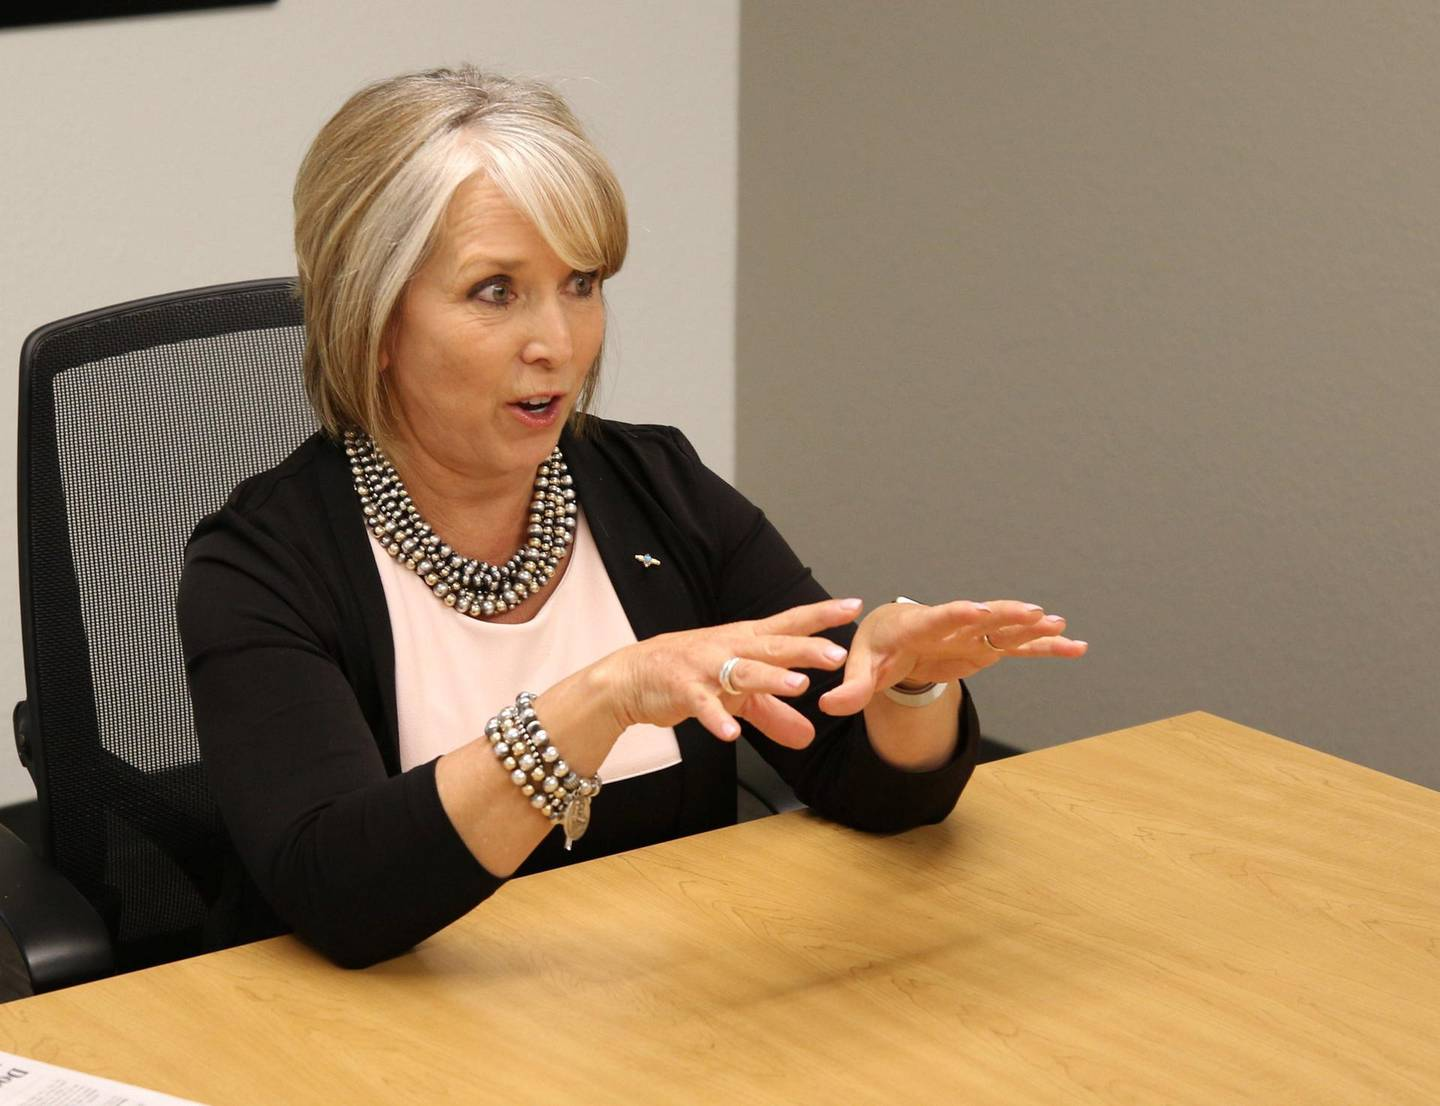 Gov. Michelle Lujan Grisham, who pushed for an immediate increase in the minimum wage in New Mexico to $10 an hour, has said some unintended consequences of the new law may make it necessary for lawmakers to revisit the issue at some point.FMN Minwage folo2 1216